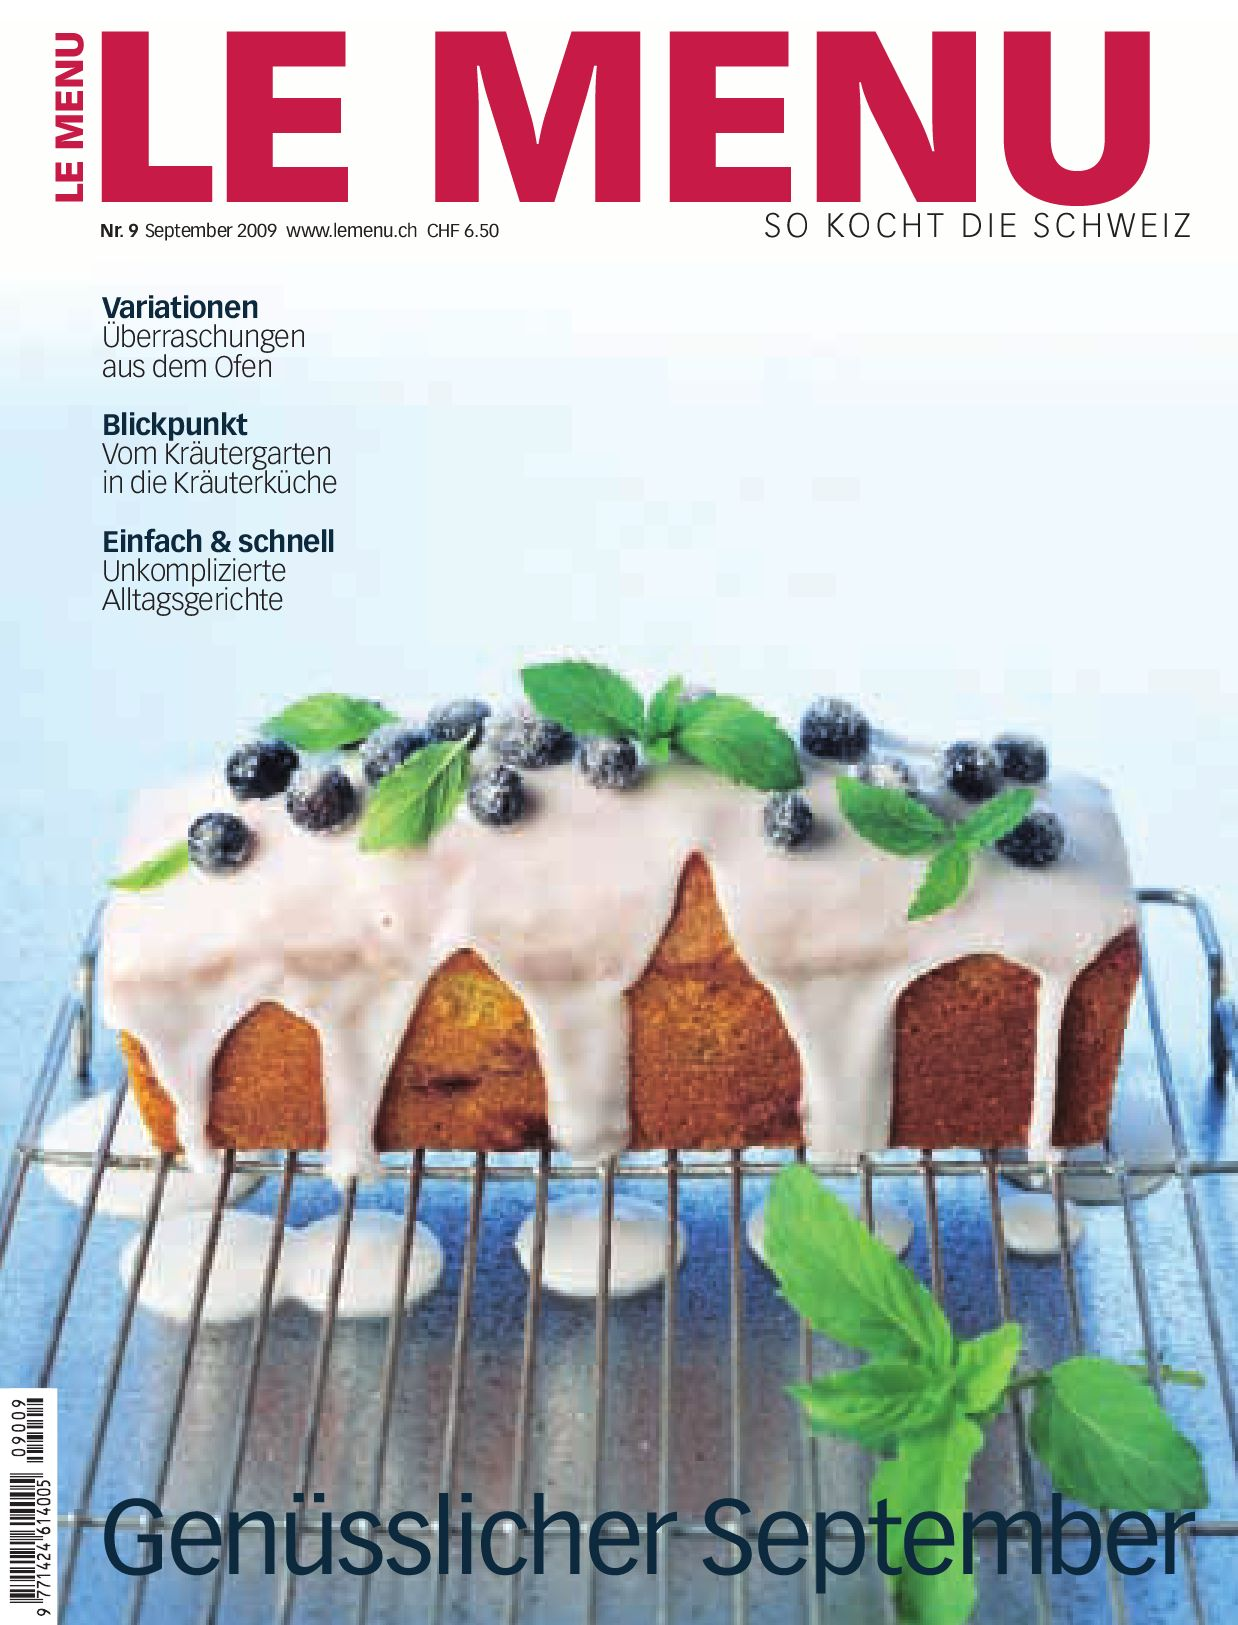 LE MENU September 2009 by George Schifferle - issuu